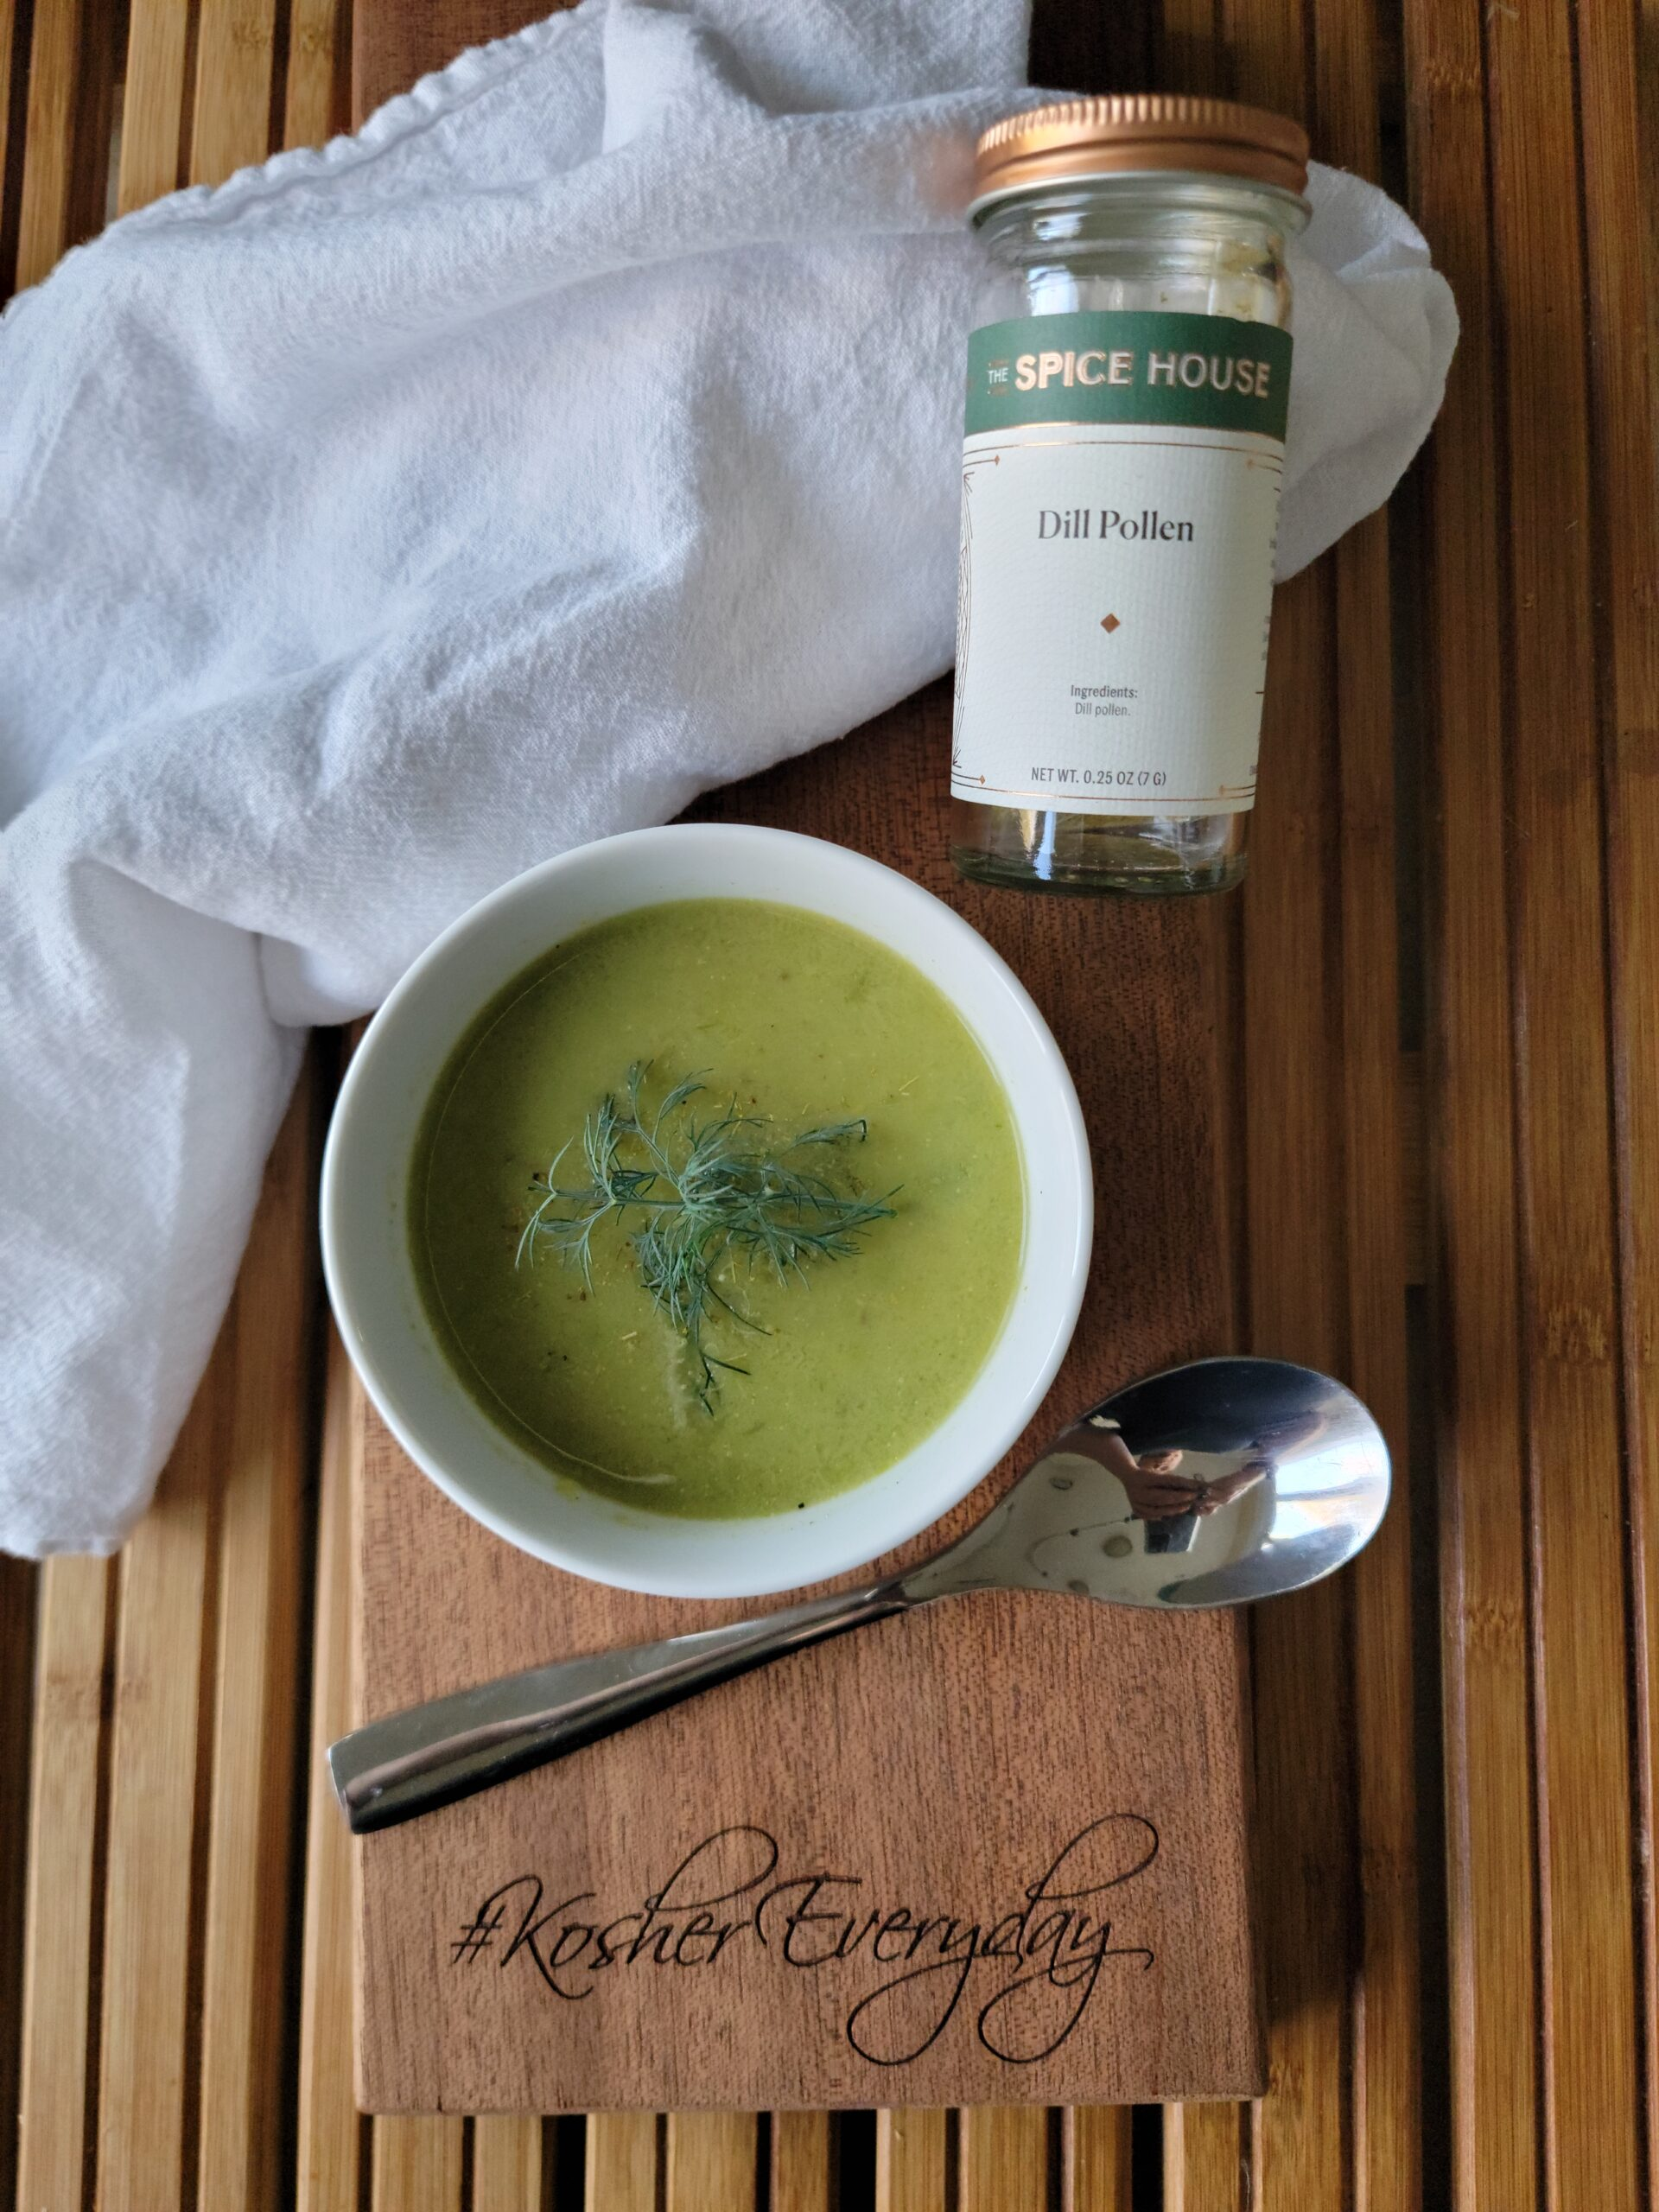 Asparagus Soup with Dill Pollen and a picture of the dill pollen jar.